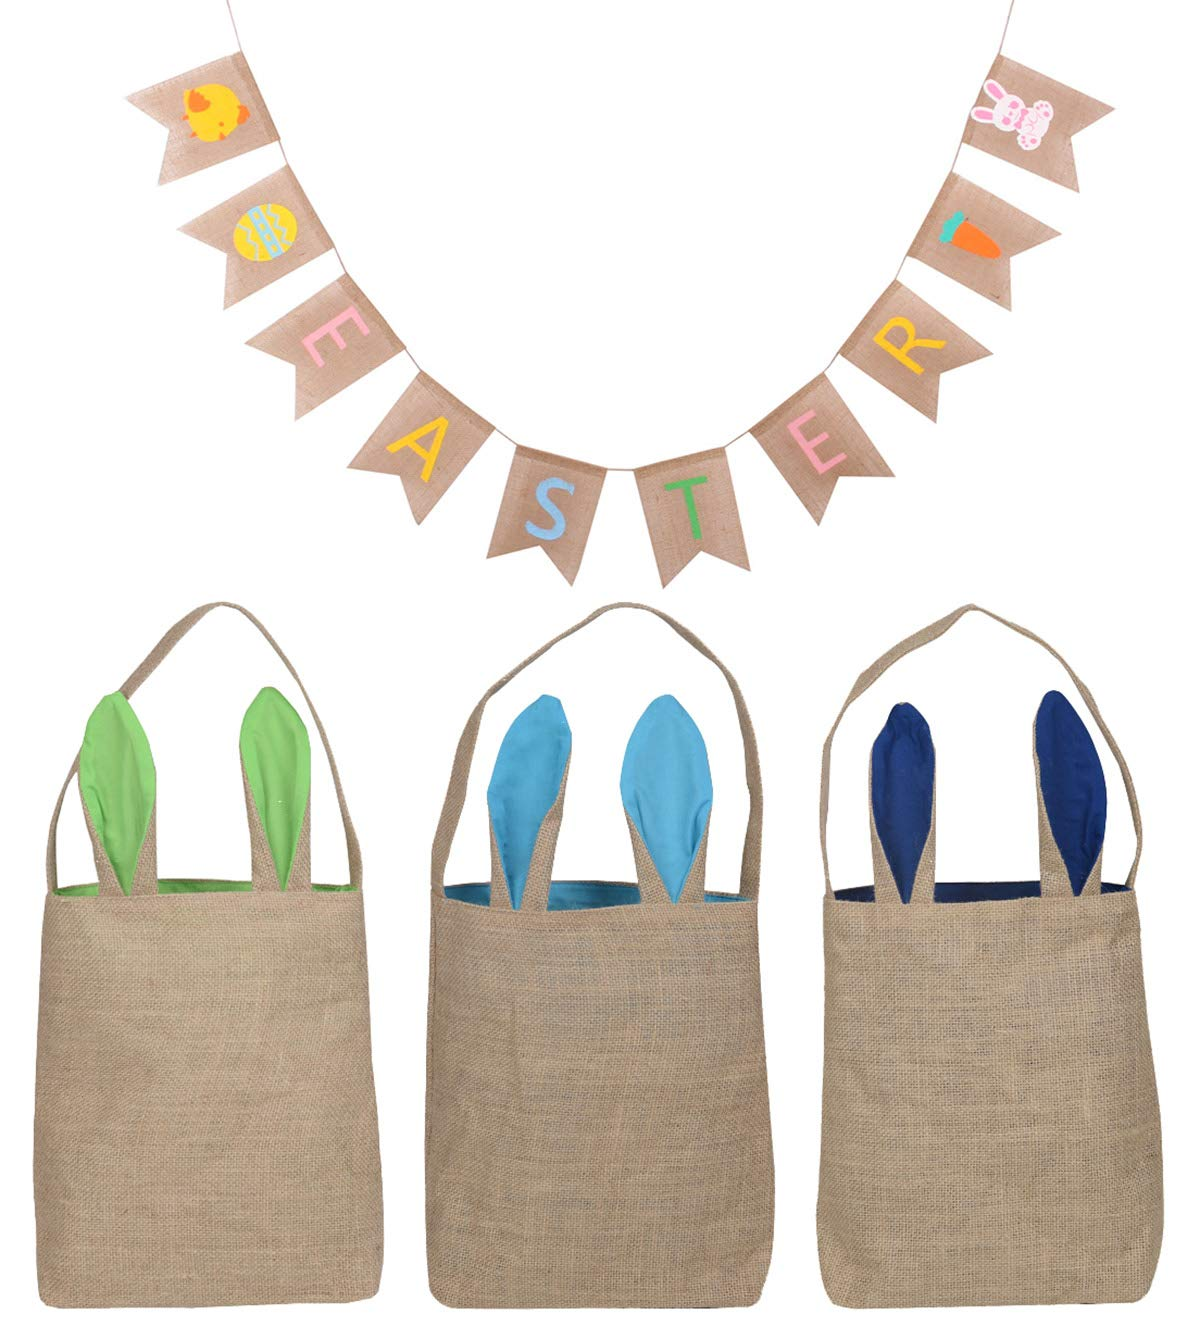 KEFAN 3 Pack Easter Bunny Bags and Easter Easter Bunny Baskets Yute Burlap Bunny Ear Tote Bags